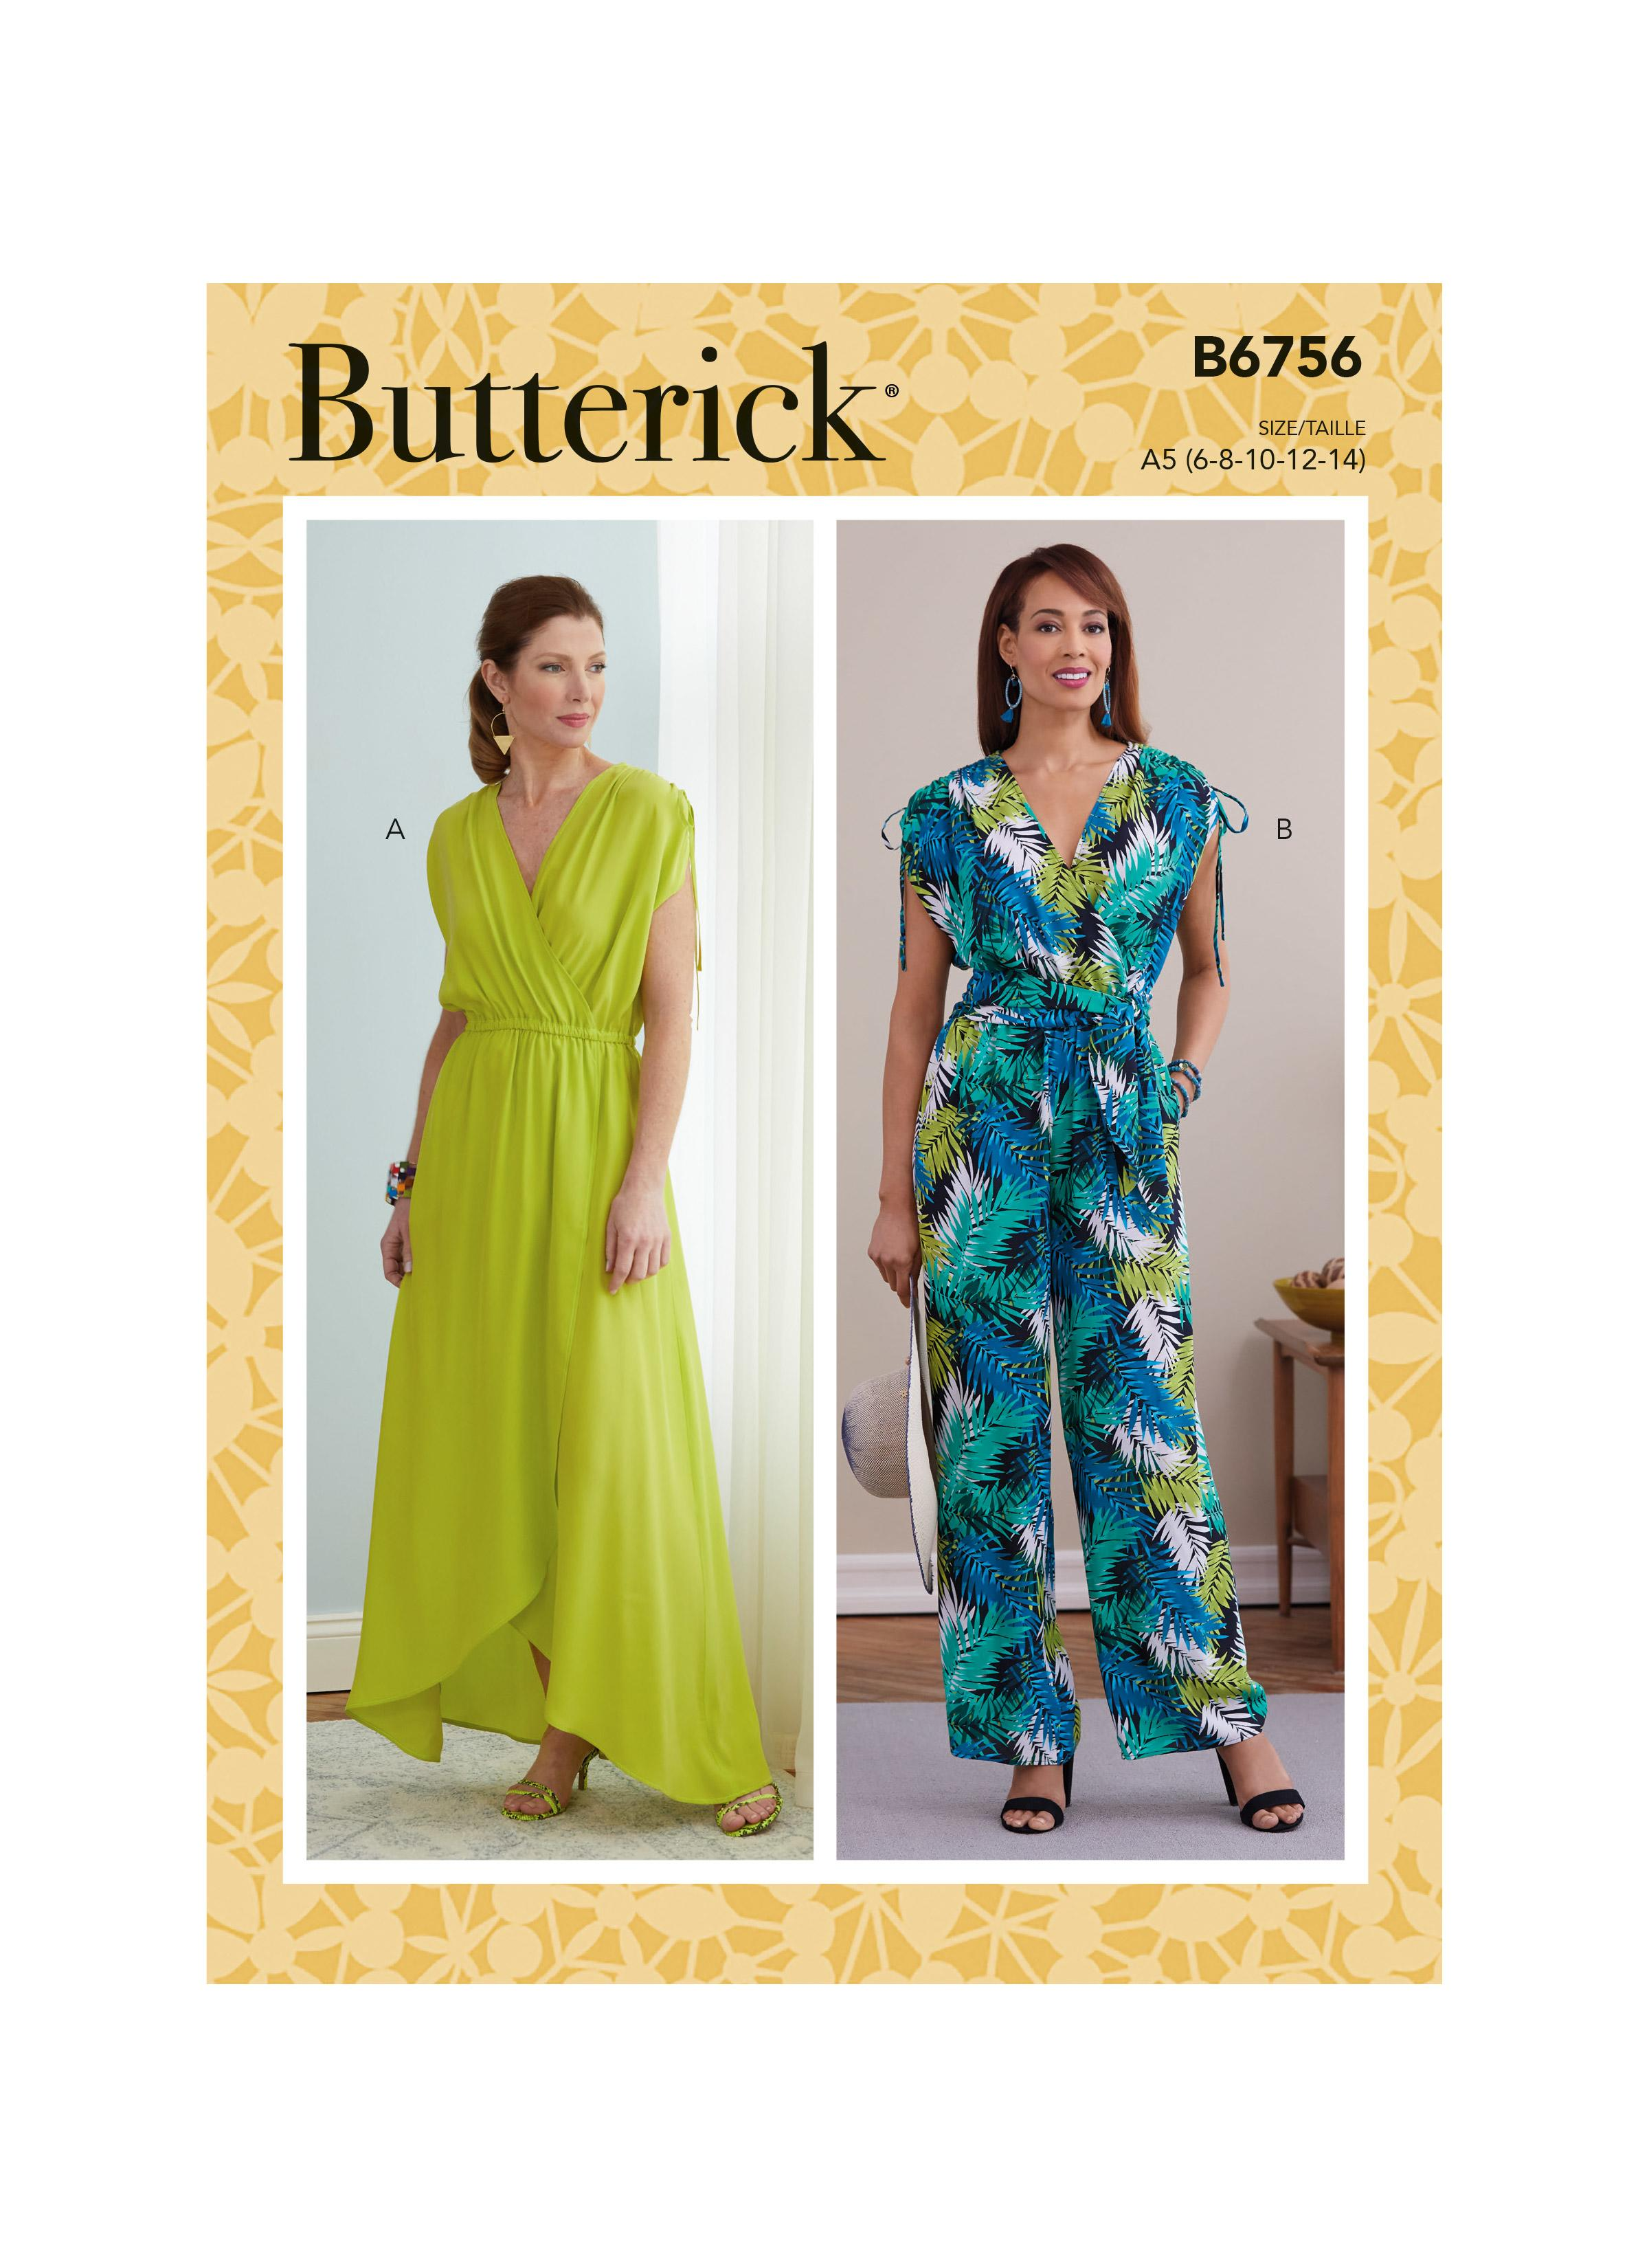 Butterick B6756 Misses' Dress, Jumpsuit and Sash